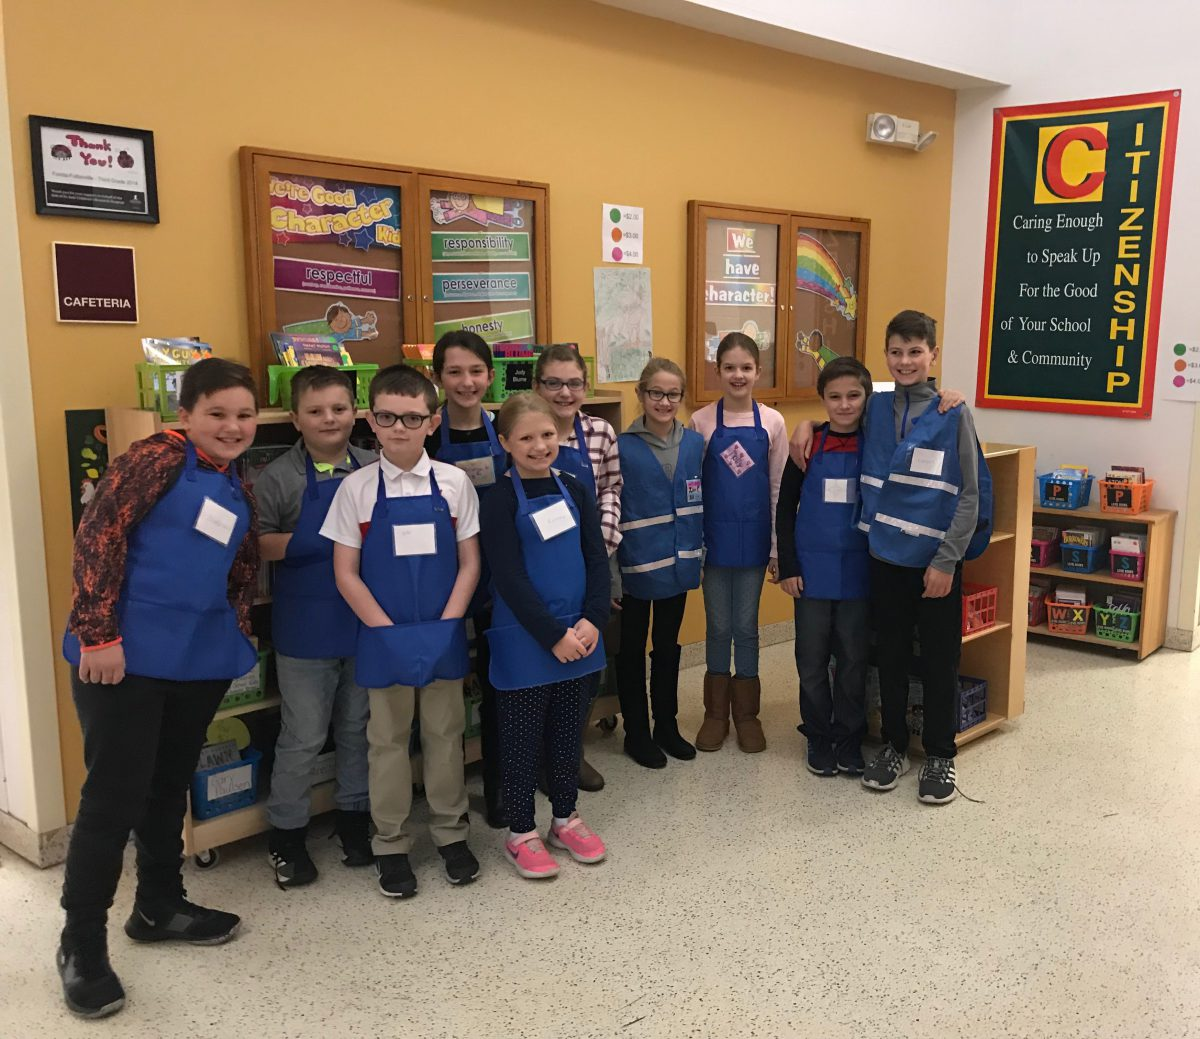 Elementary school celebrates the opening of student-run book store